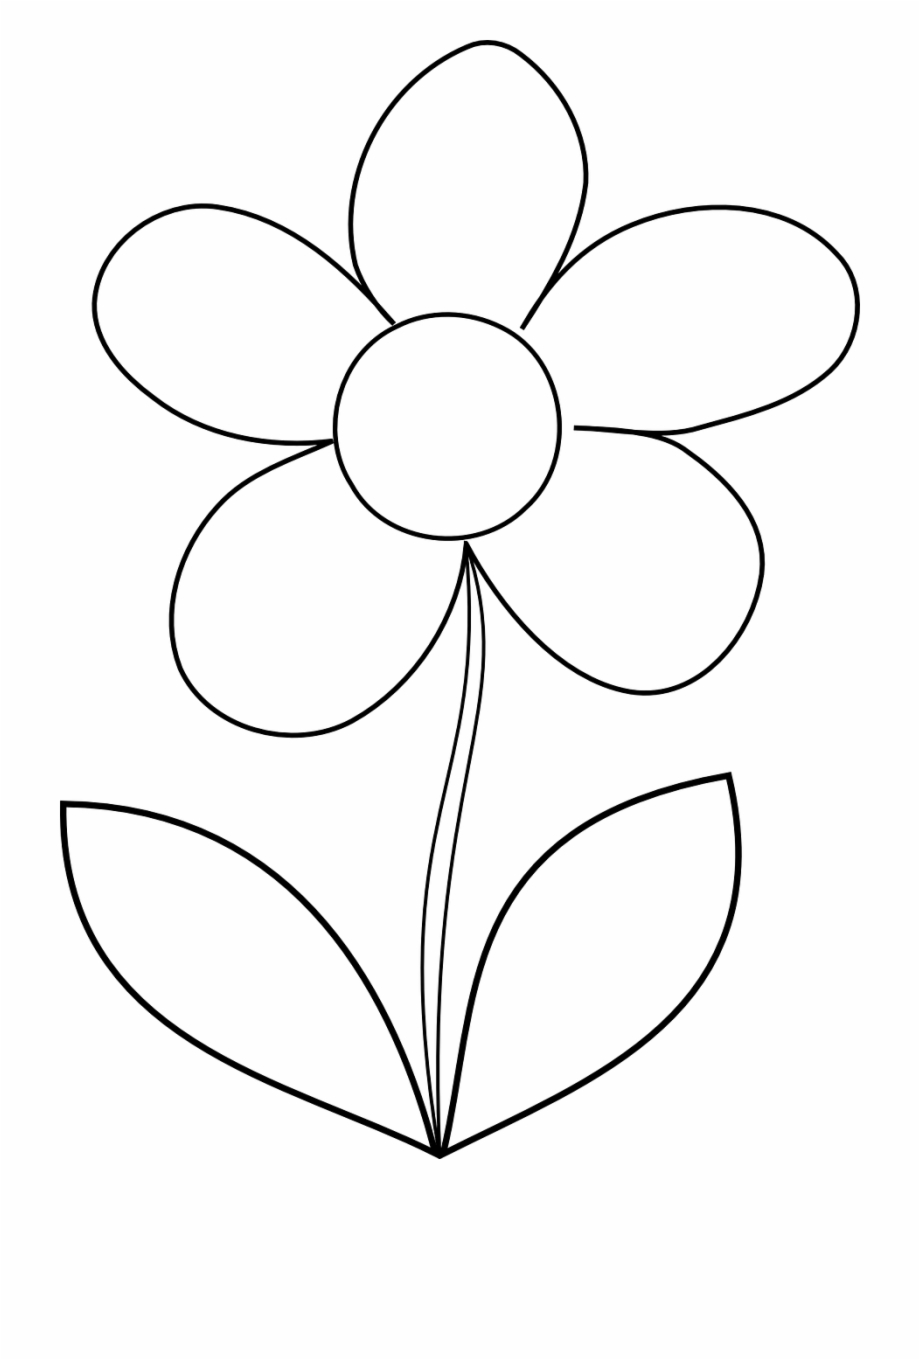 flowers outlines for colouring flower daisy spring outline png image  easy printable outlines for flowers colouring